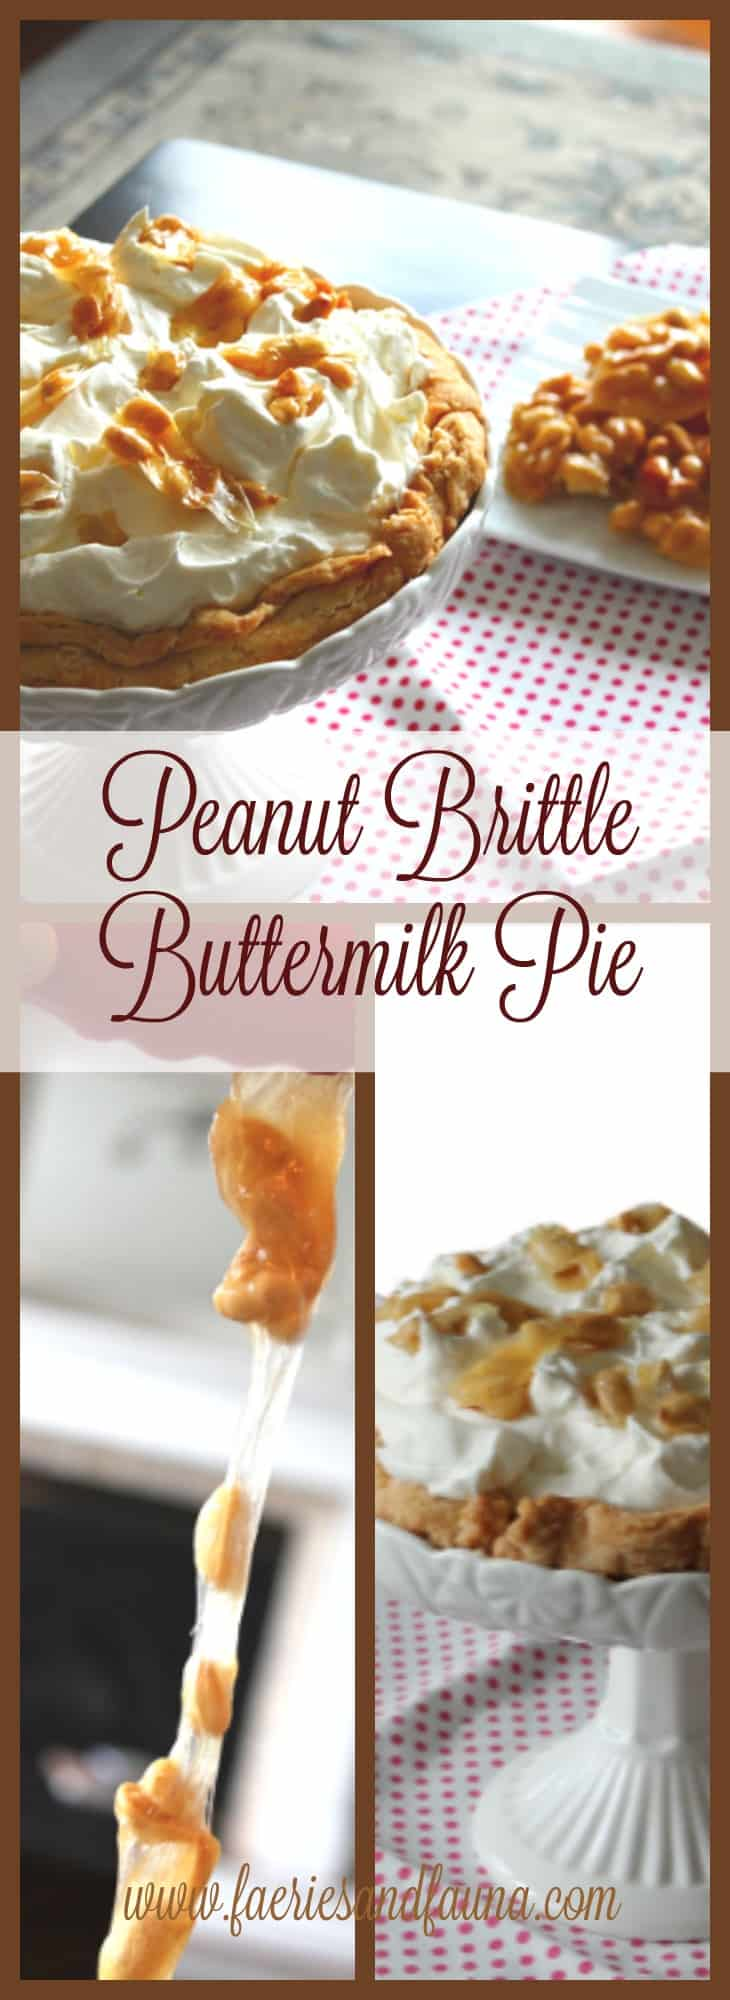 Recipe, Baking Recipe Buttermilk pie recipe, easy buttermilk pie, peanut recipes, old fashioned.,